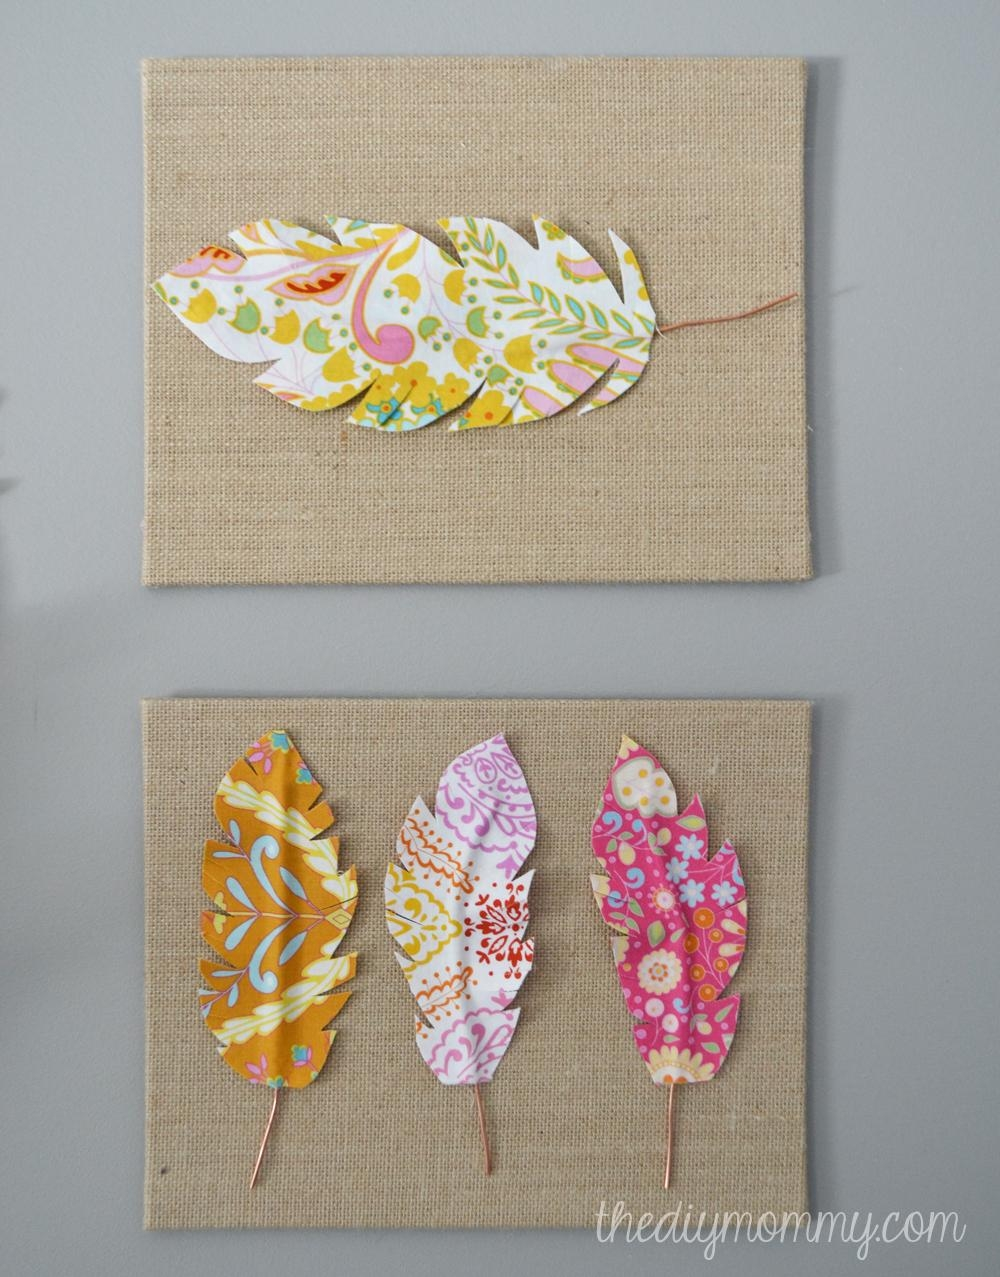 Make Fabric Feather Wall Art | The Diy Mommy Throughout Fabric Wall Art (Image 15 of 20)